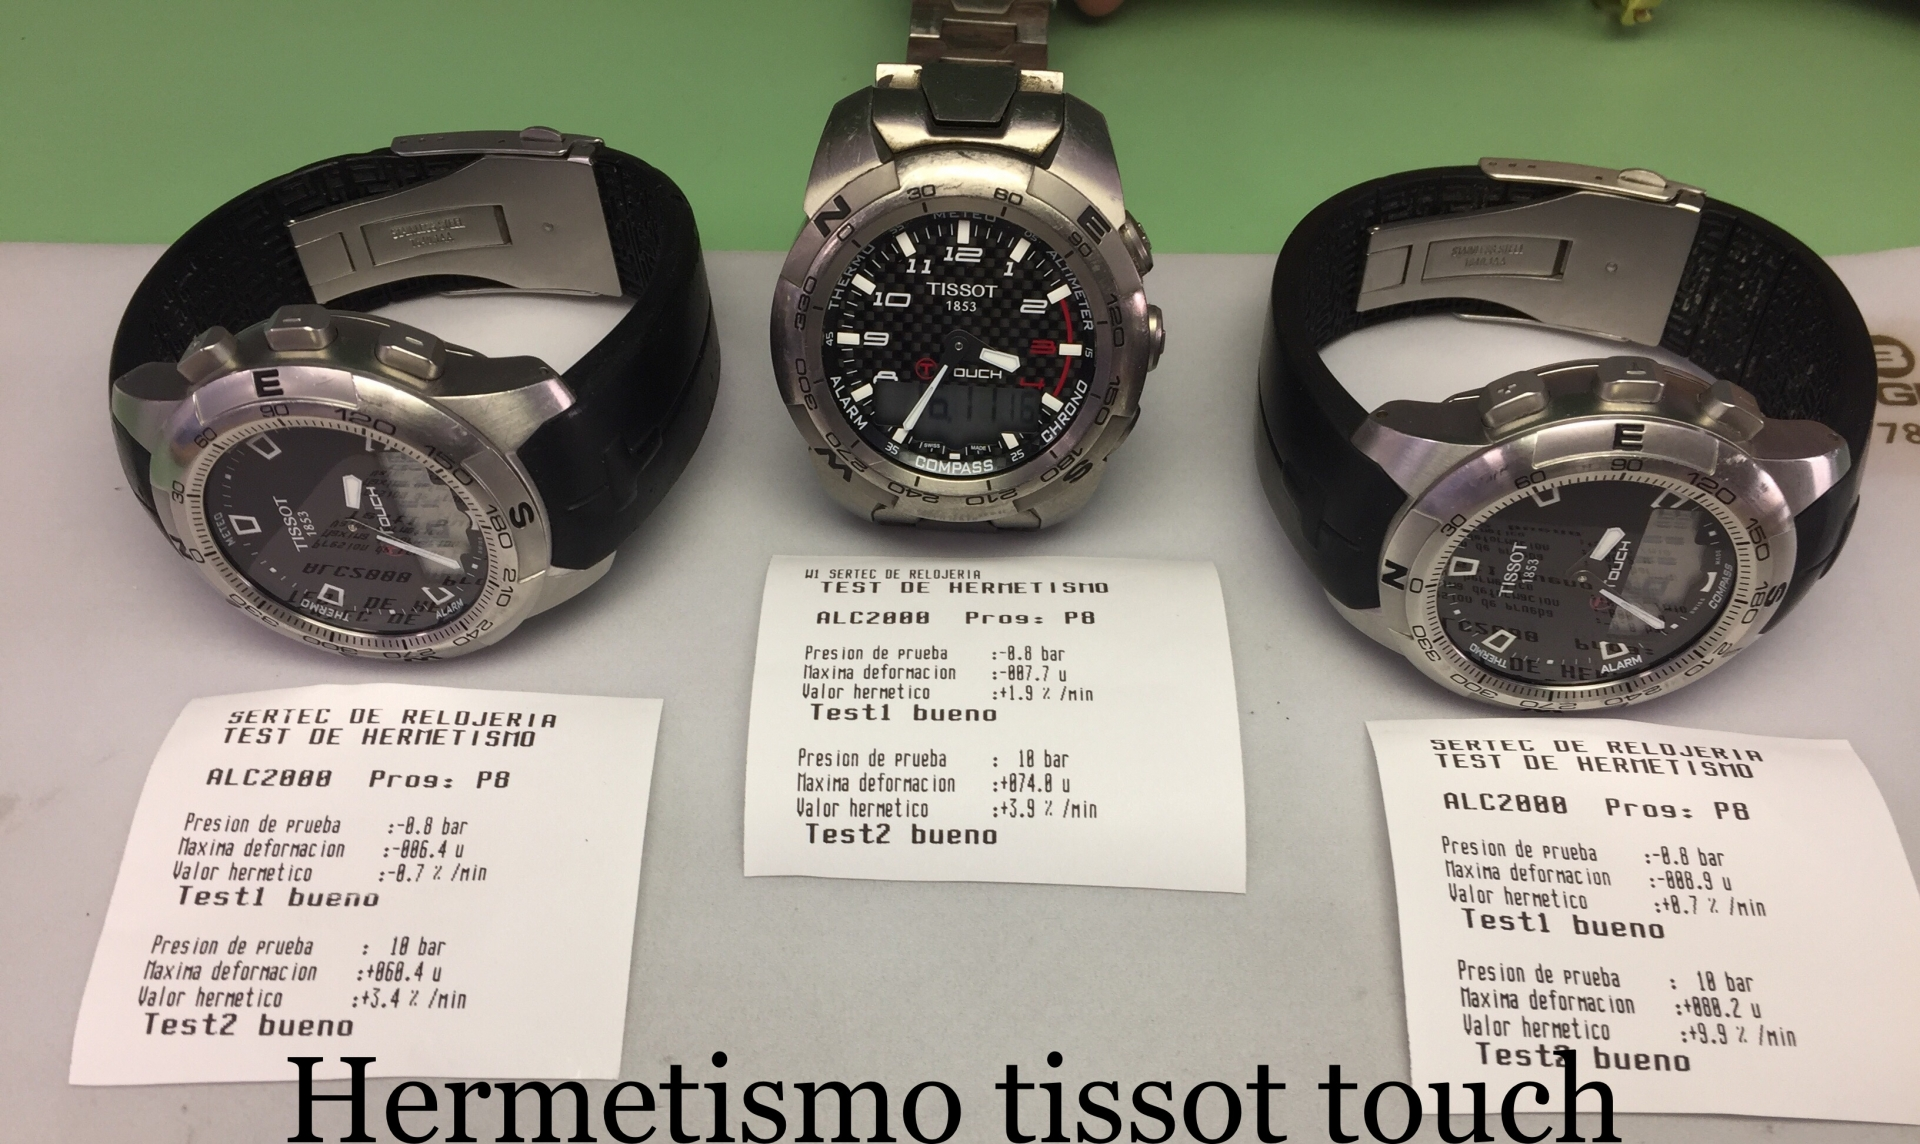 Hermetismo tissot touch